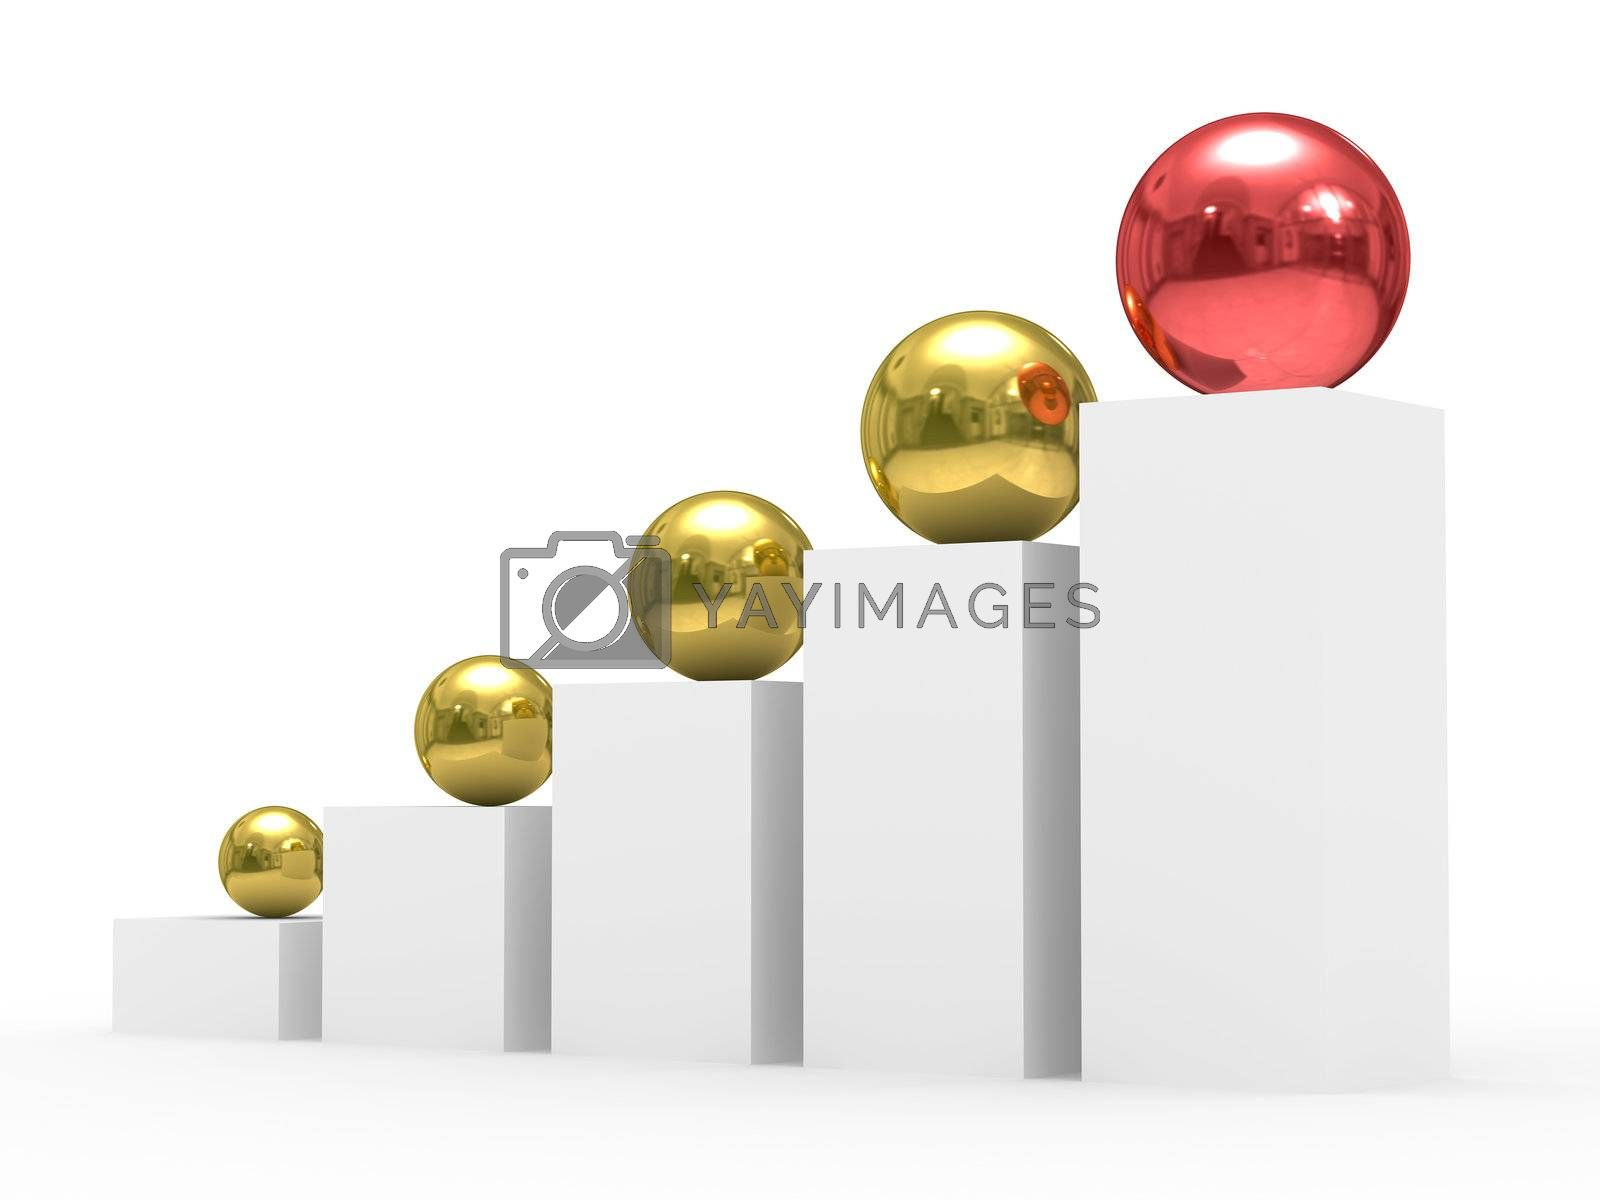 Royalty free image of Conceptual image of teamwork. isolated 3D image by ISerg